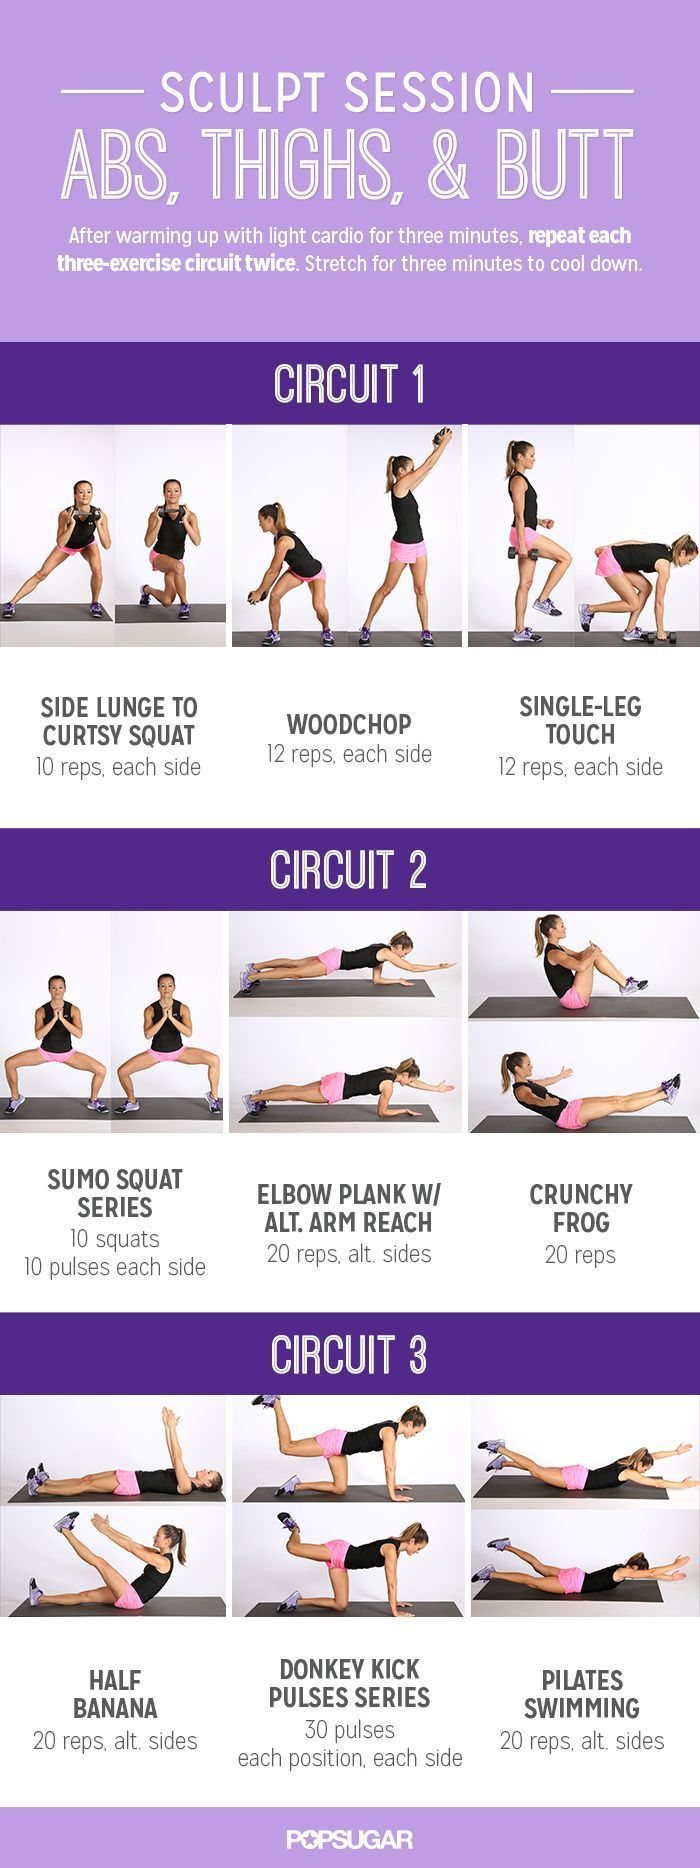 Best workout tip : Printable Workout: Sculpt Session For Abs and Glutes